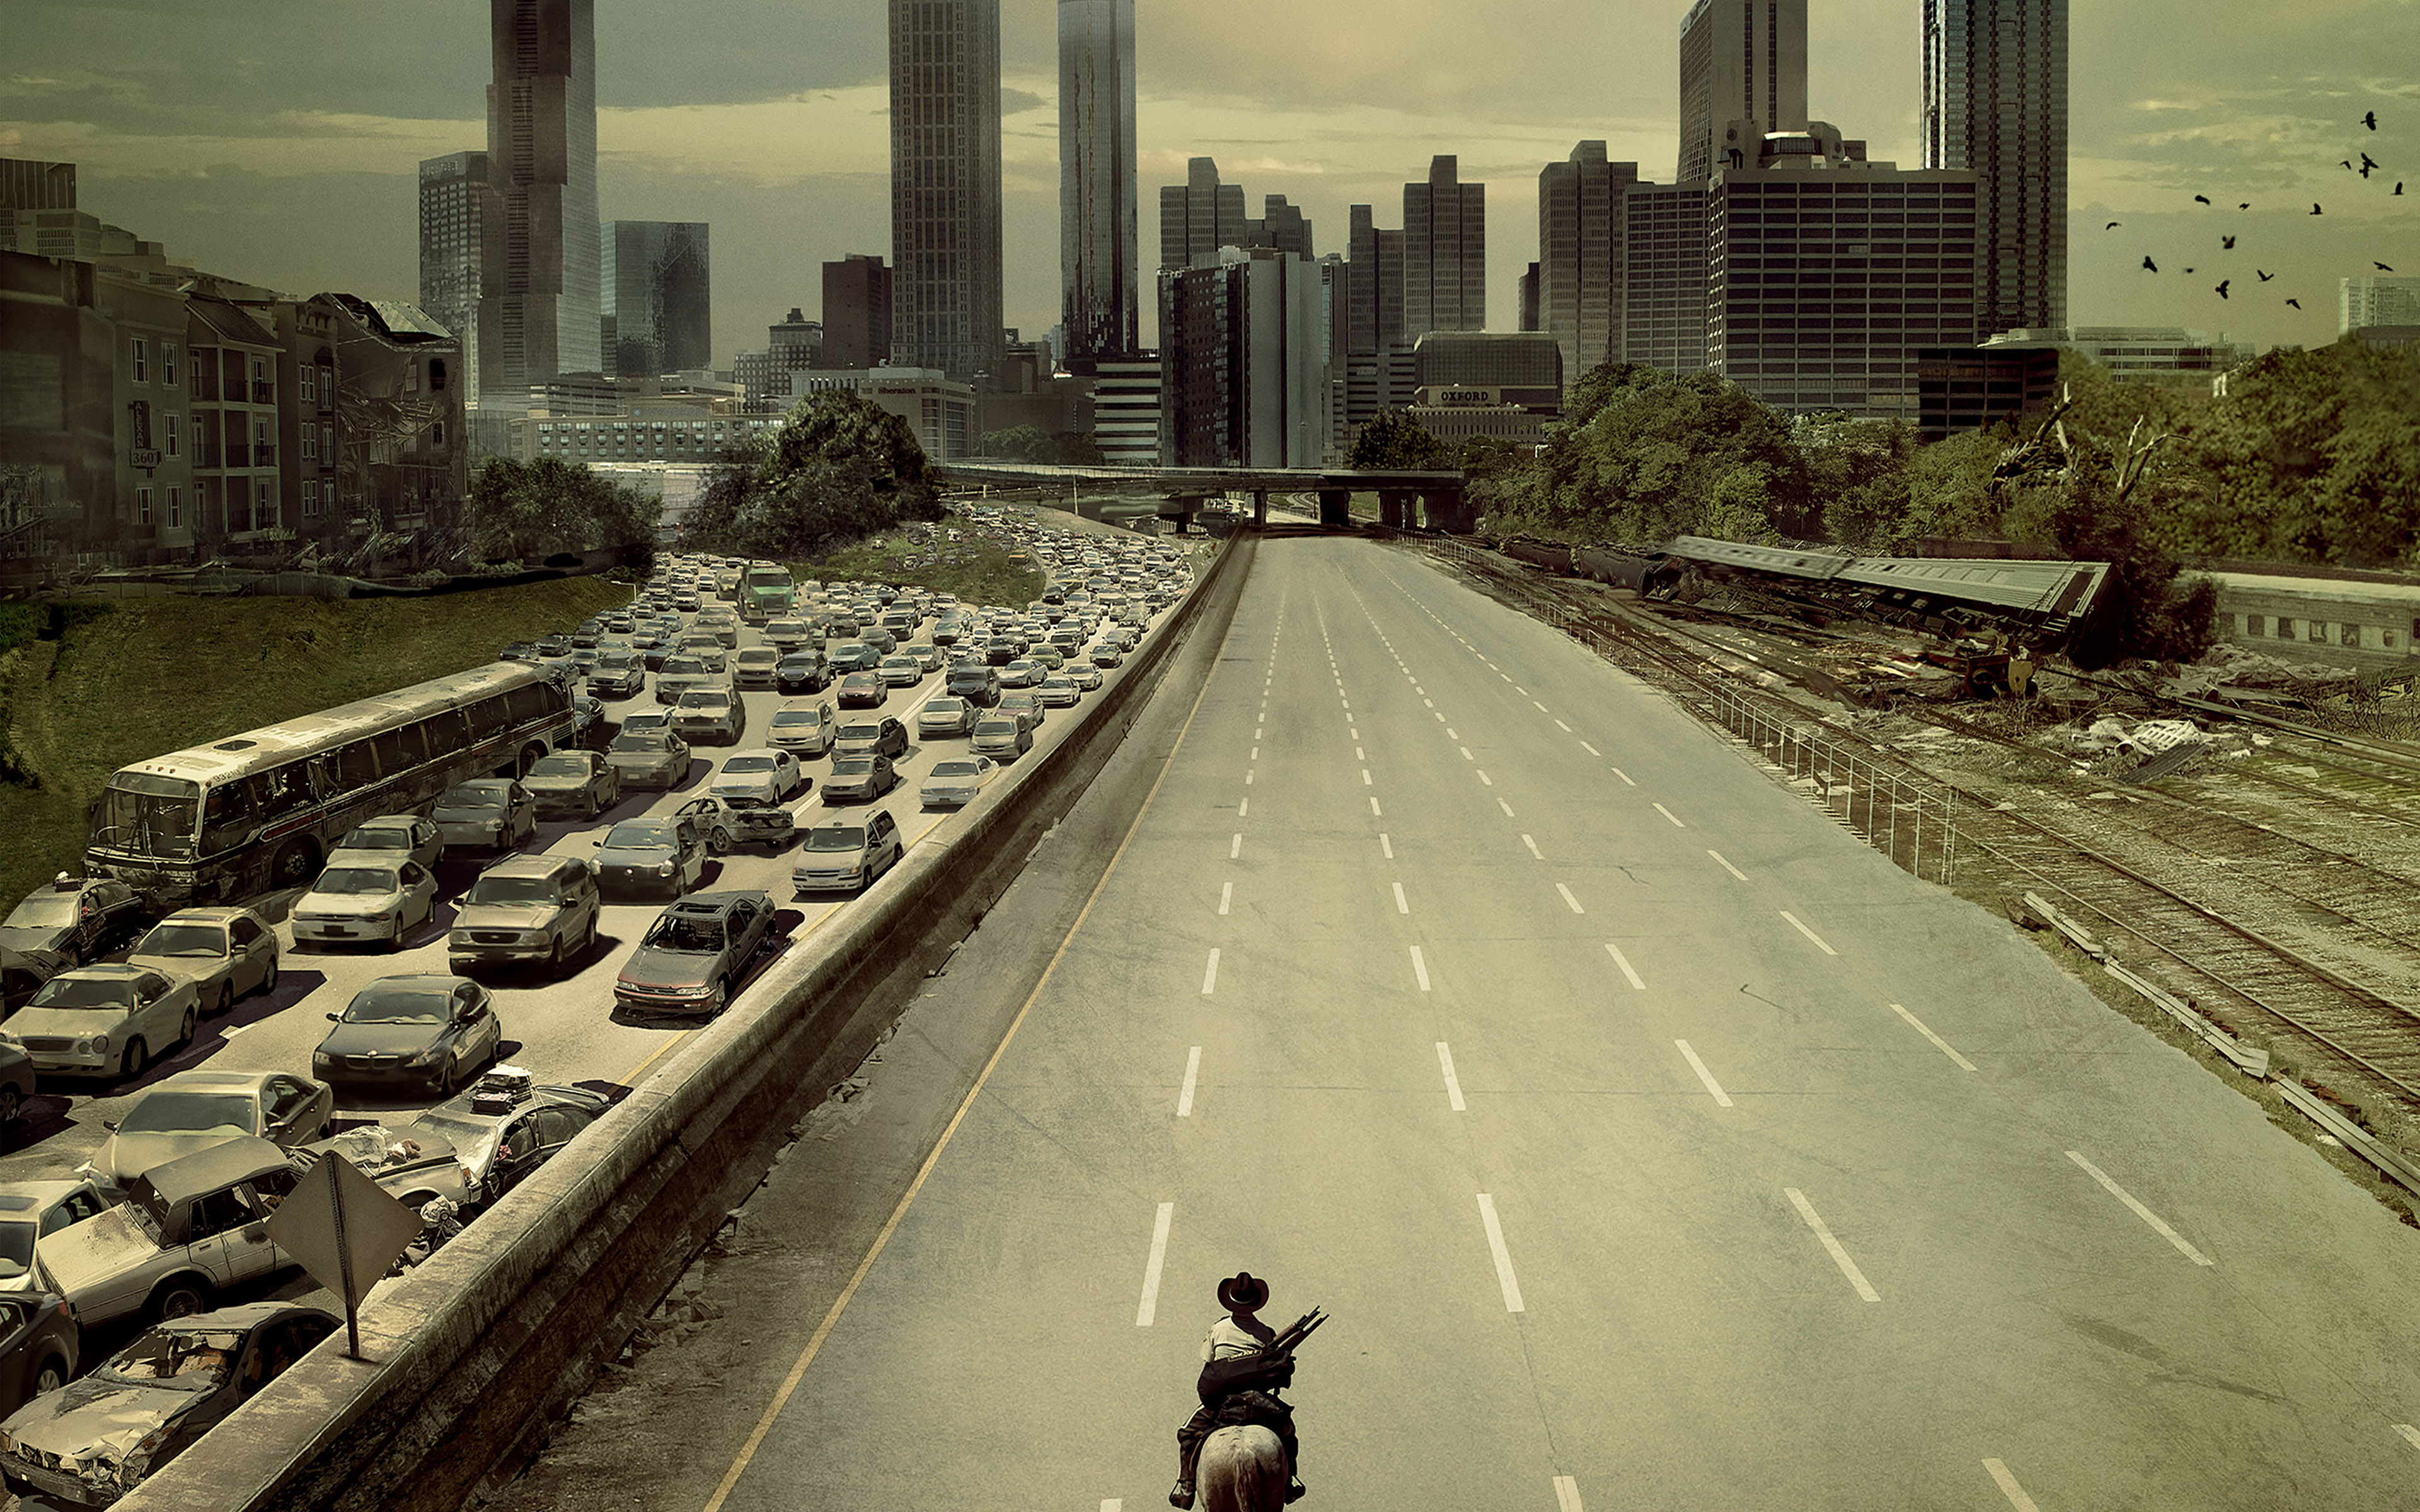 Desktoppapers Co Ab34 Wallpaper Walking Dead City Film